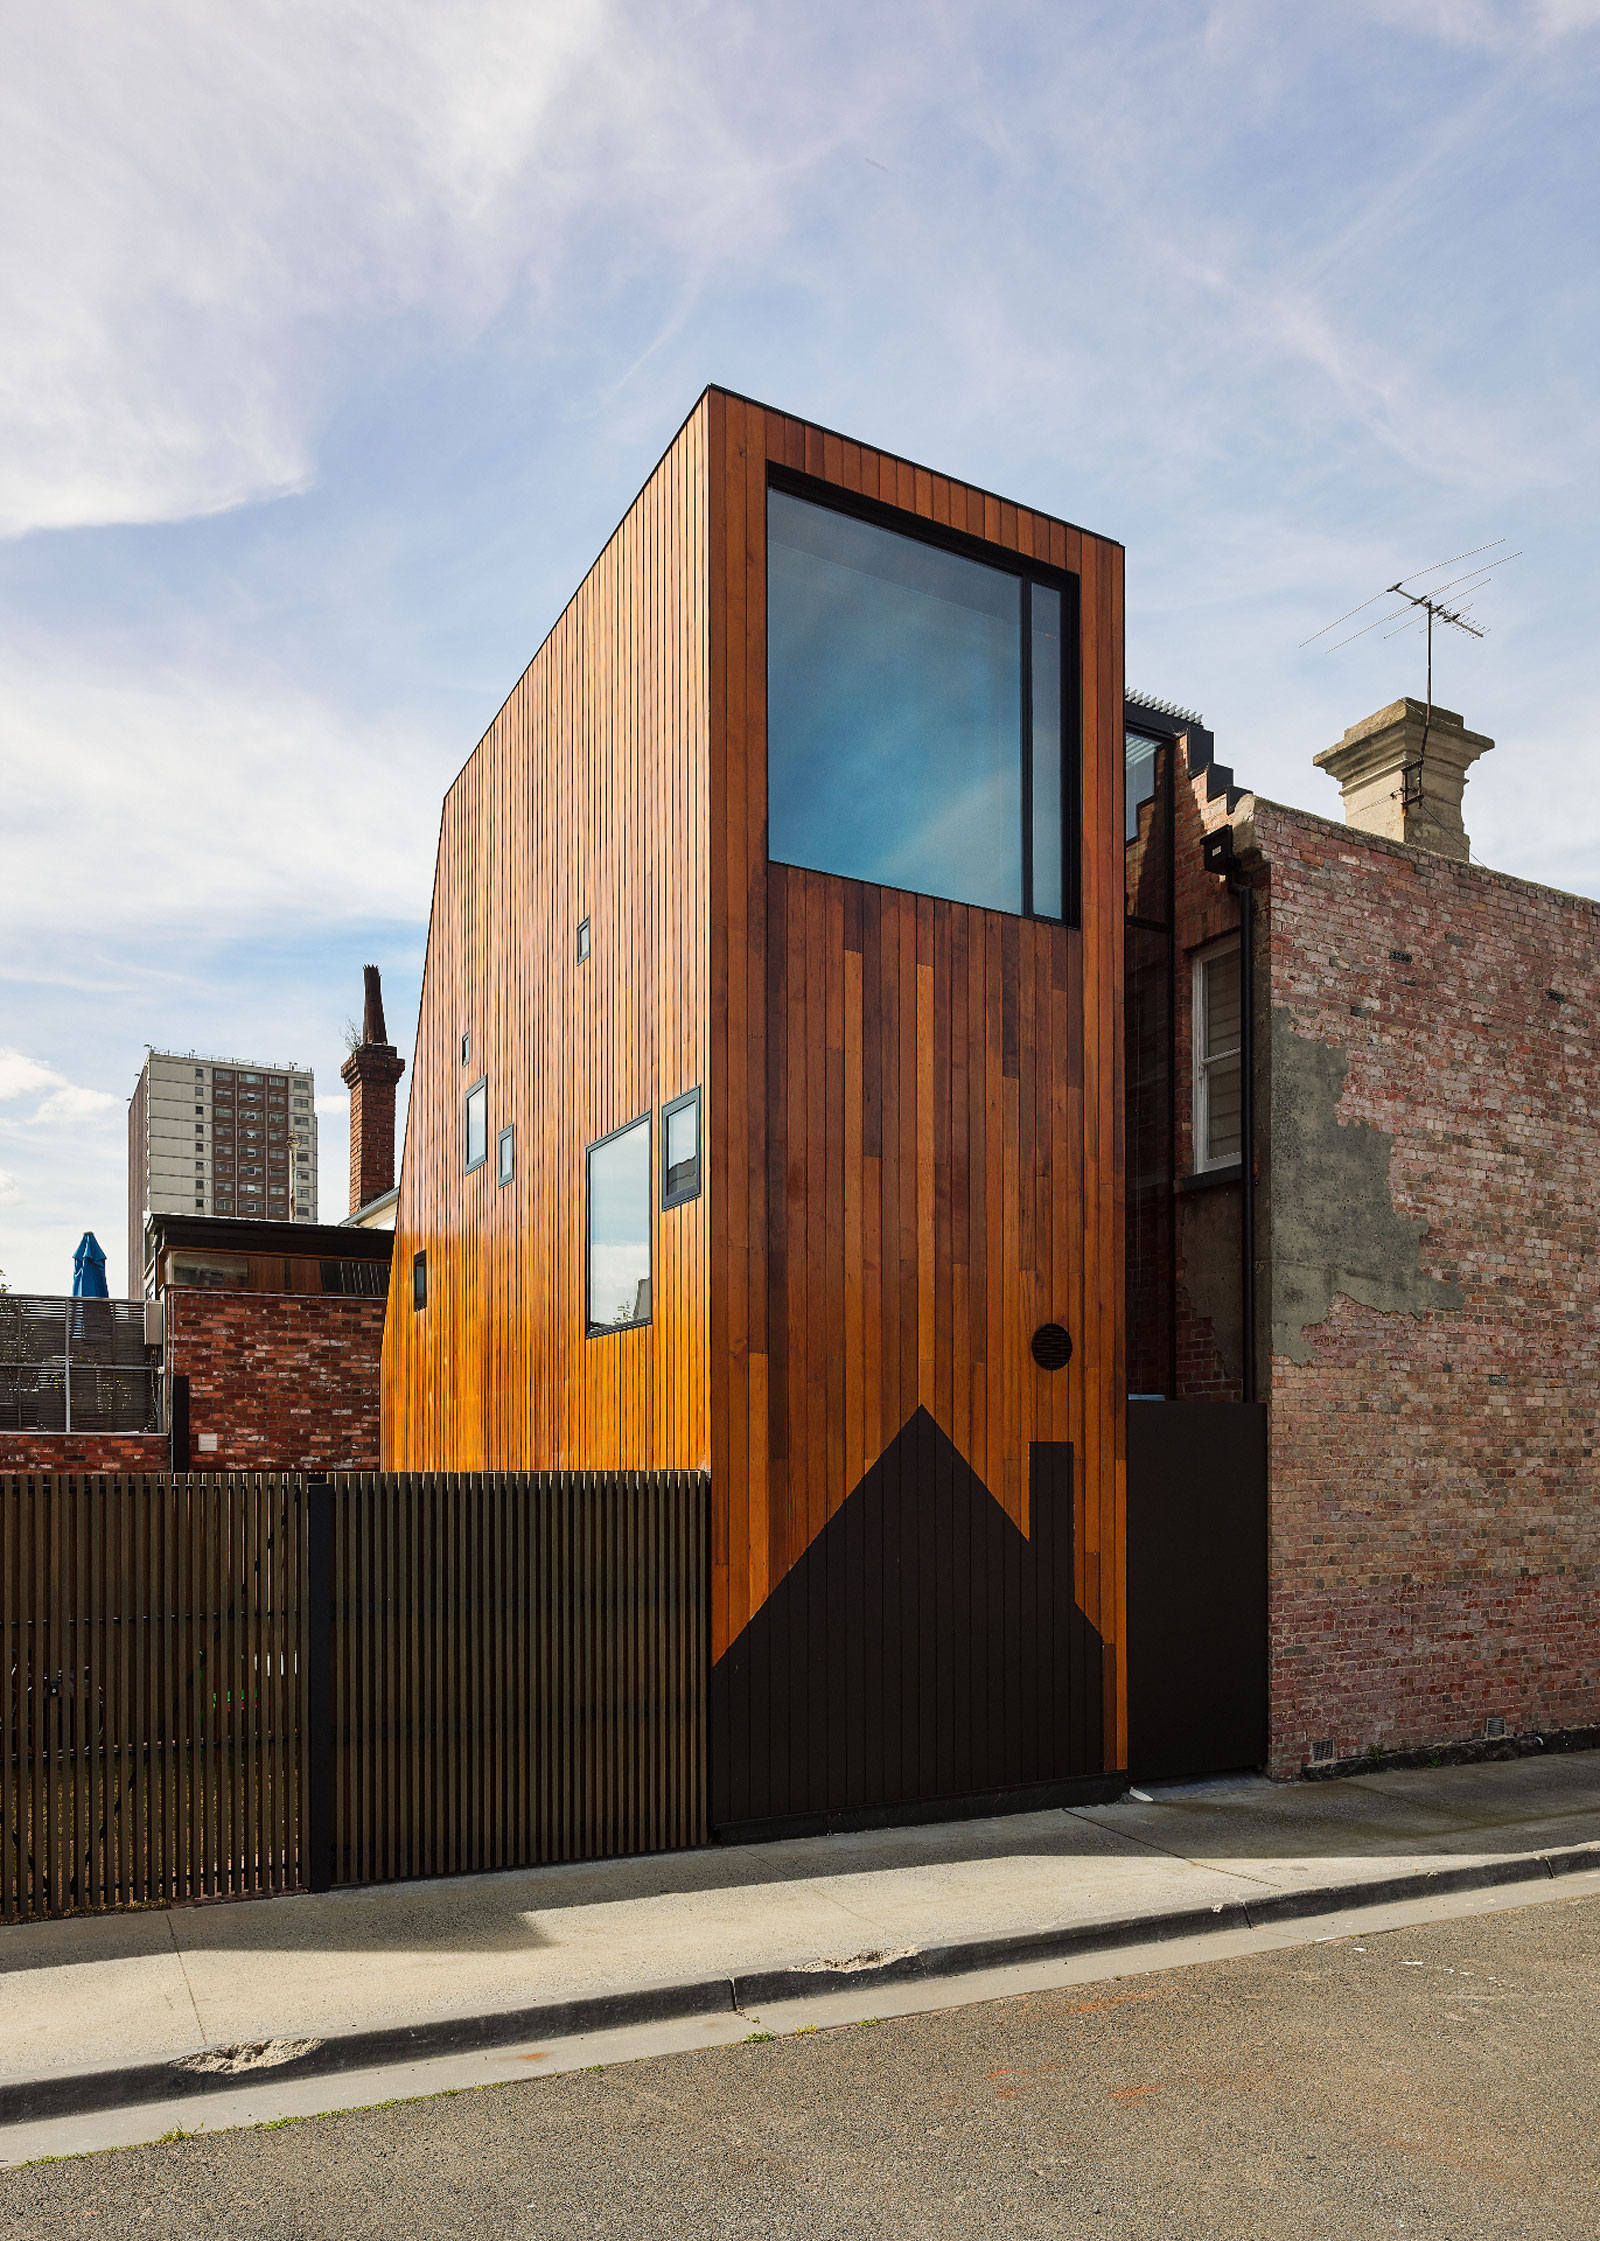 The Addition To The Rear, Similar To The Vein Running Through Most Of Austin Maynard Architect's Work, Is Defined By A Sense Of Joviality An